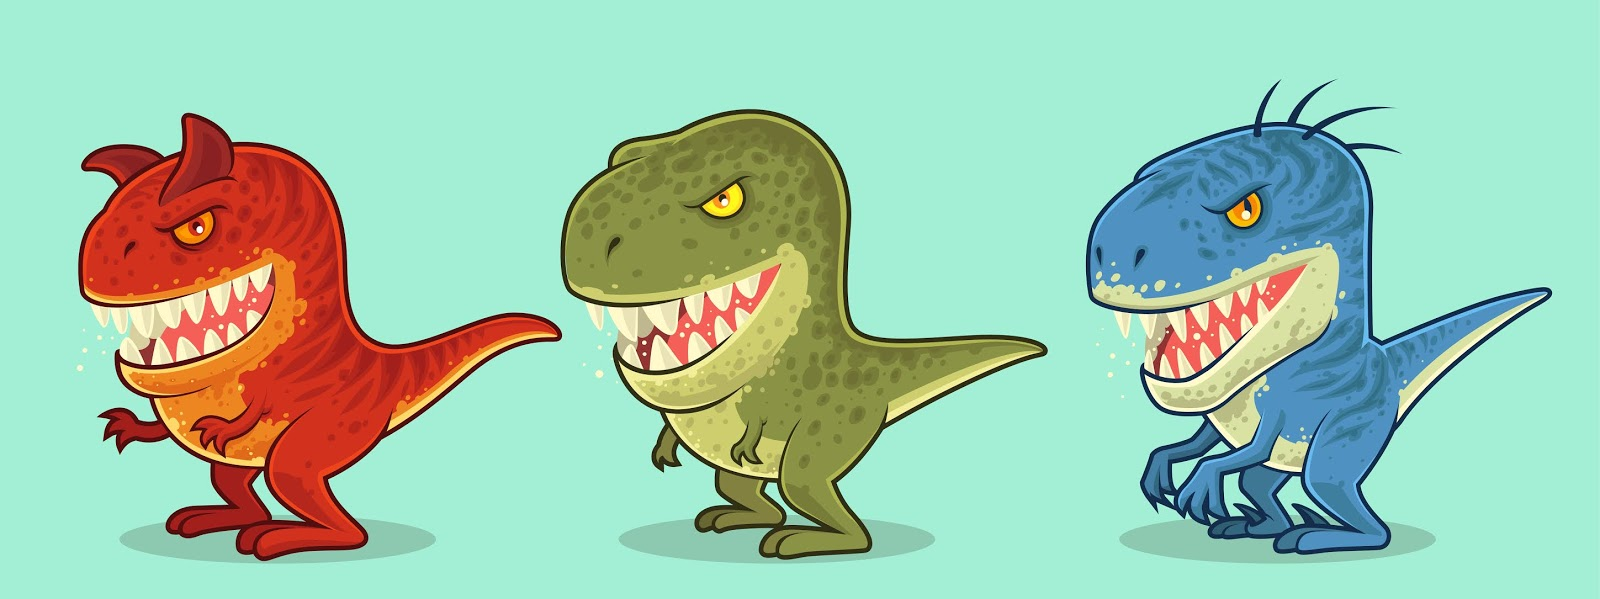 Cute Dinosaurs Character.jpg Free Download Vector CDR, AI, EPS and PNG Formats